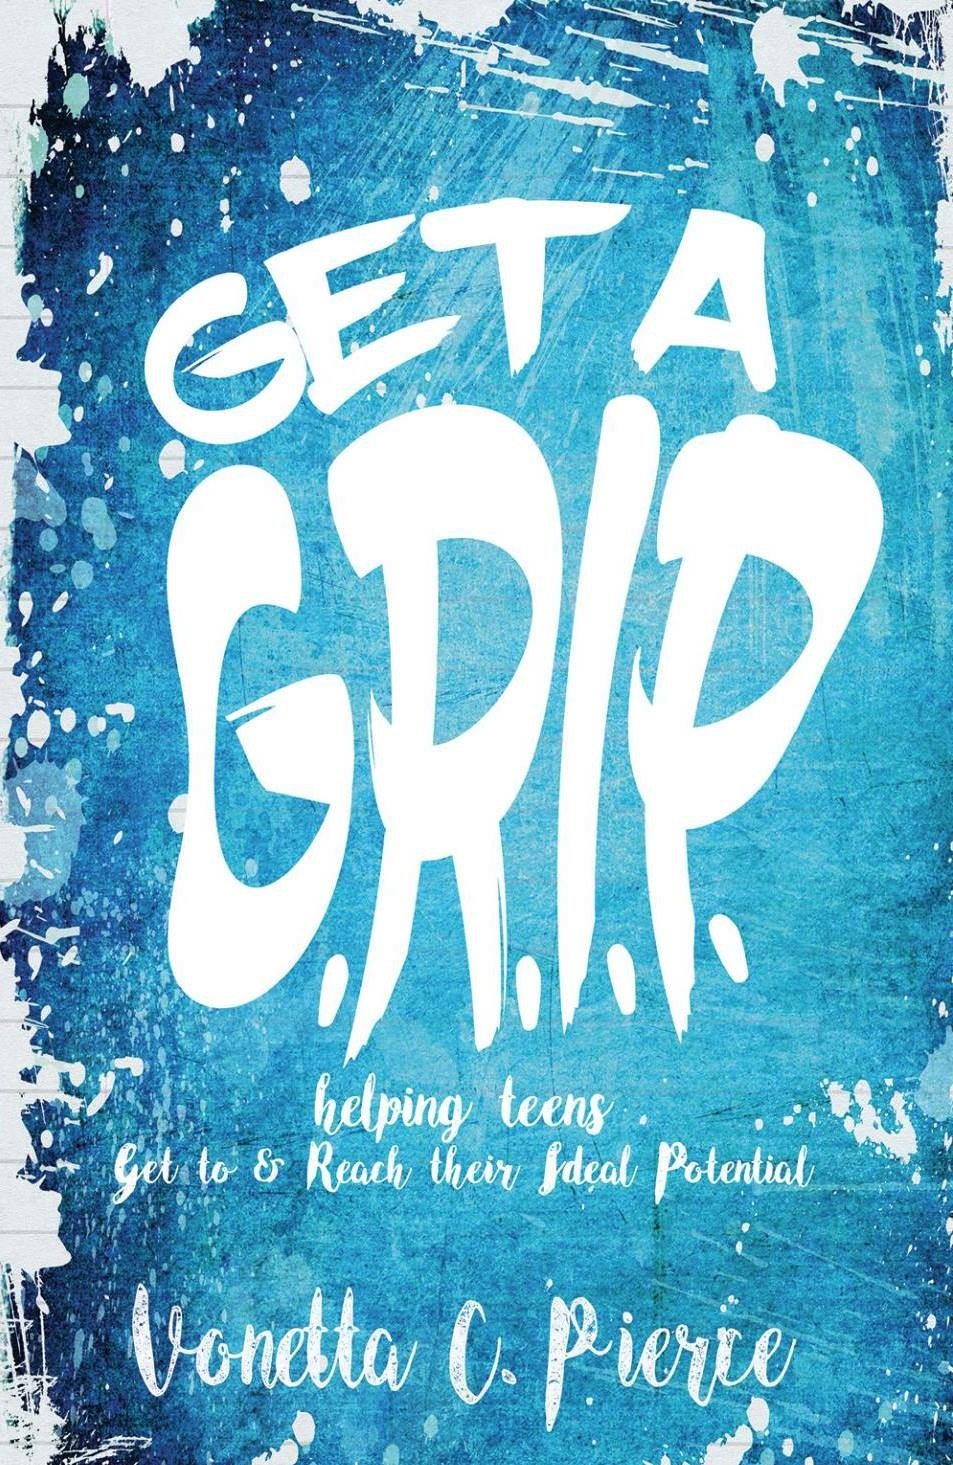 Are you between the age of 12-17? - What exactly do you need to GET A GRIP on? It's time to get a grip on your life! What is it that you want from your life?... Get a grip on life by getting a grip on yourself.-excerpt from the acclaimed book